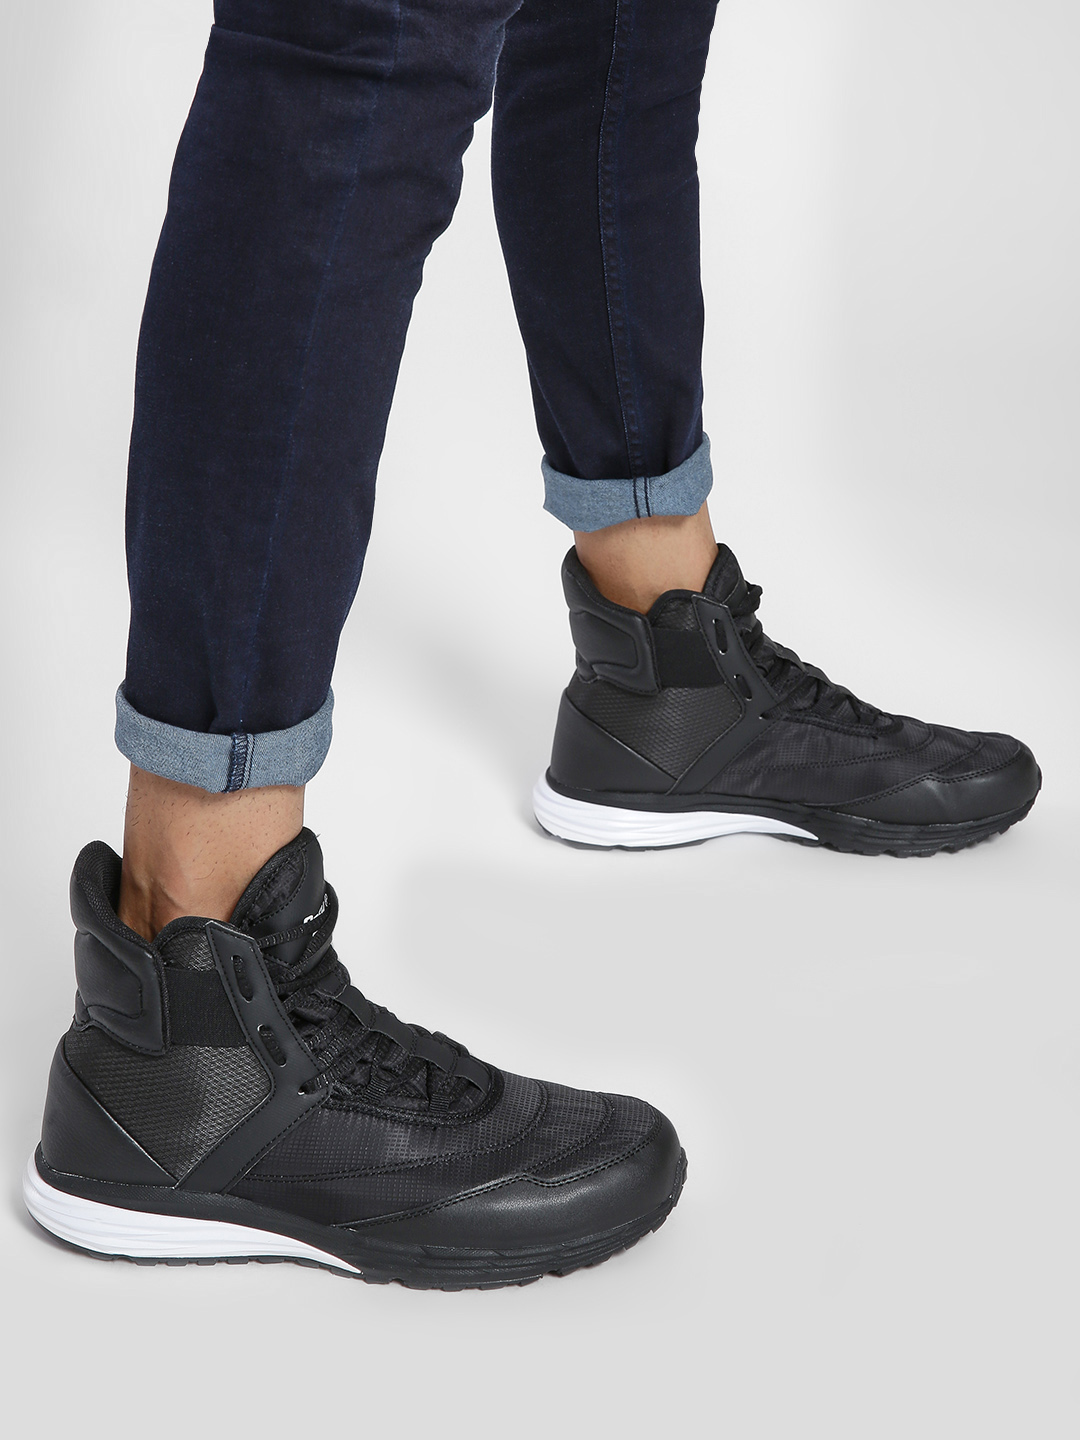 361 Degree Black Panelled Hi-Top Sneakers 1